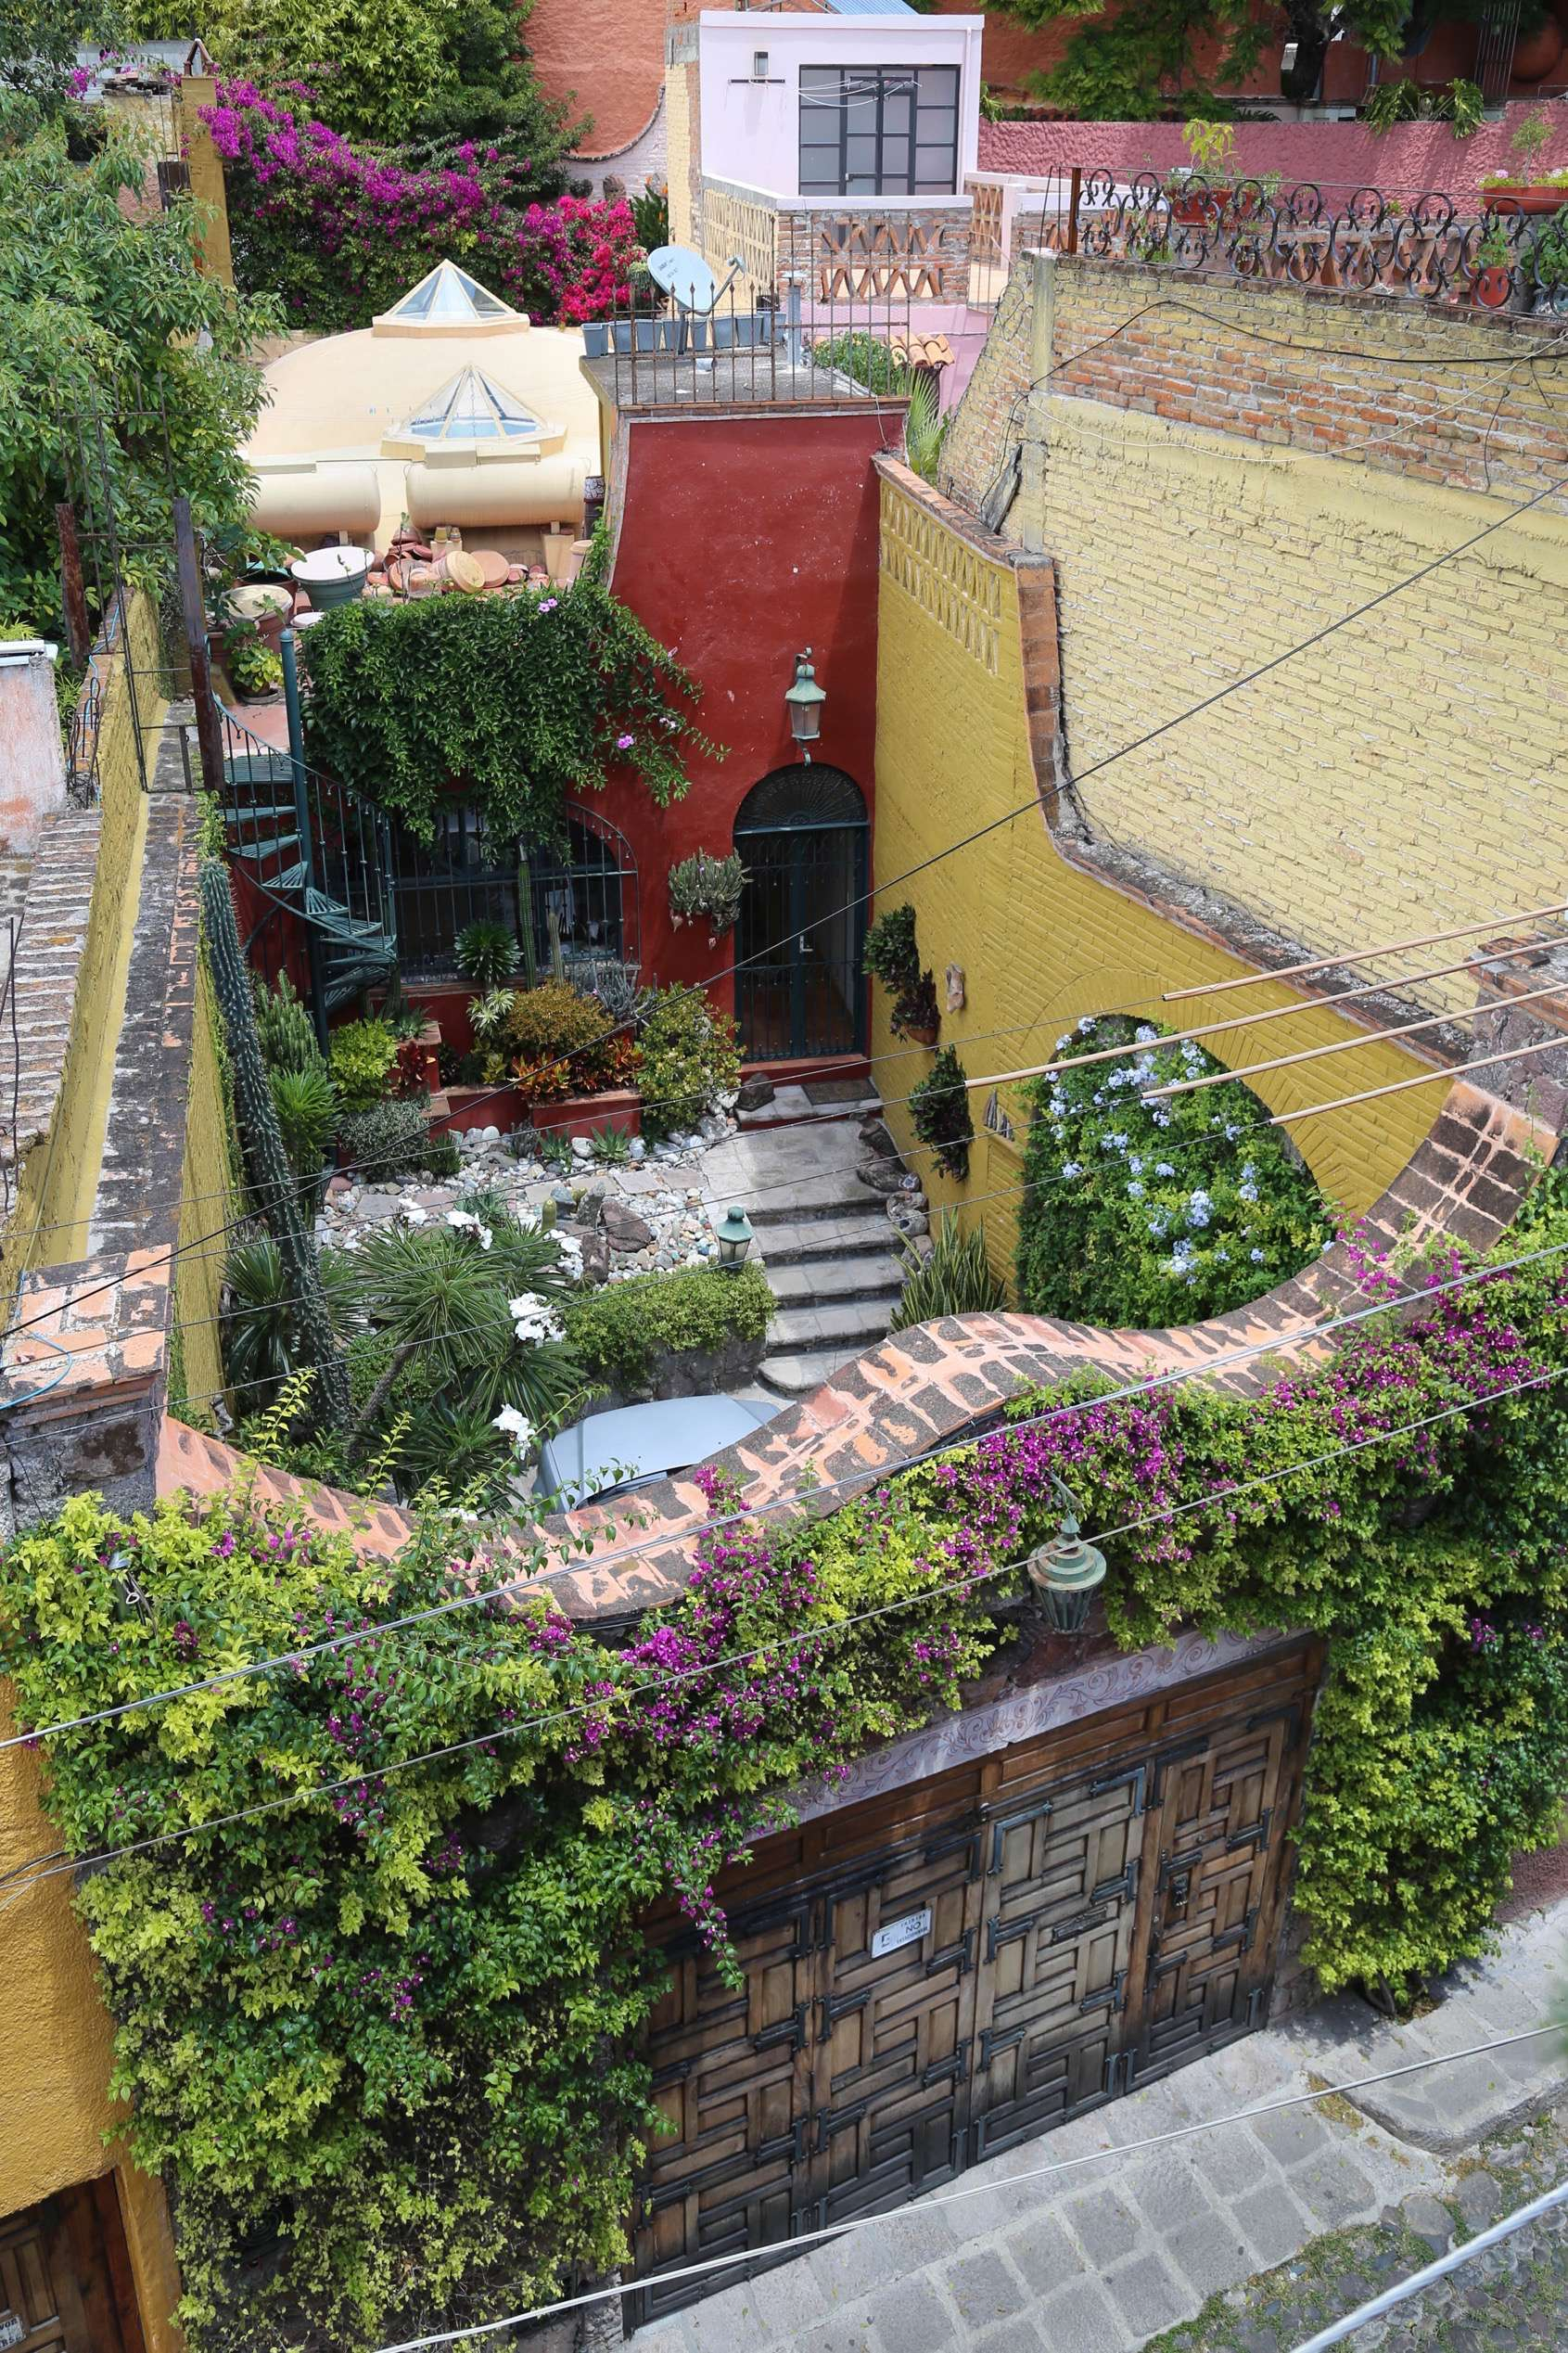 From a high vantage, the beauty of a home's courtyard reveals itself.